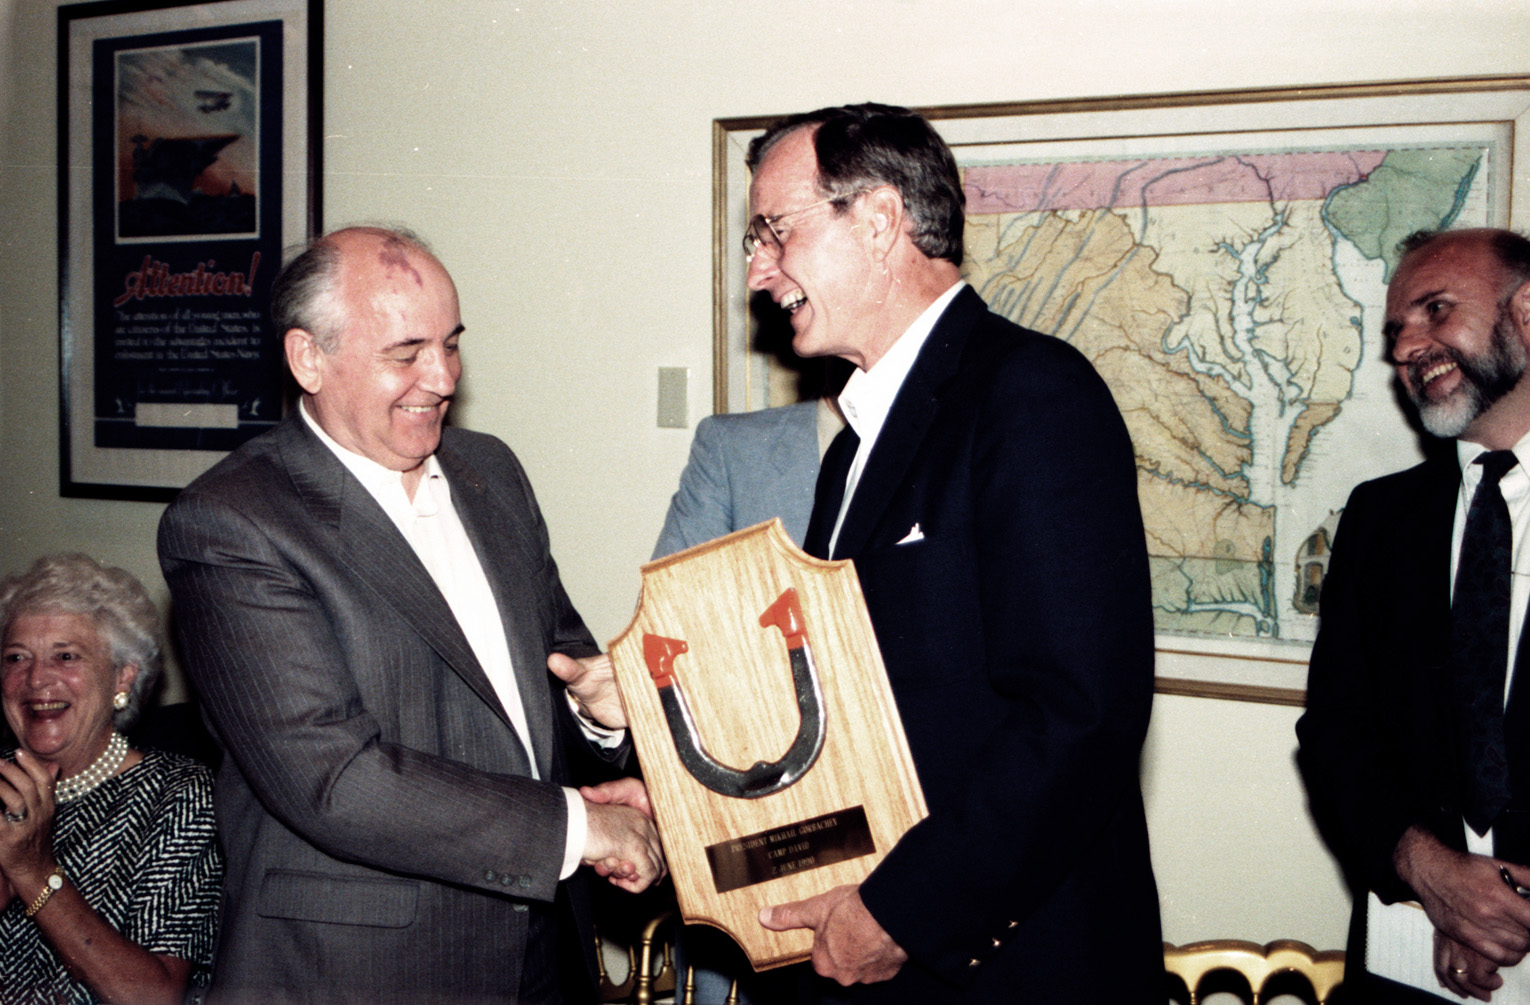 Bush presented Gorbachev with this plaque holding the horseshoe